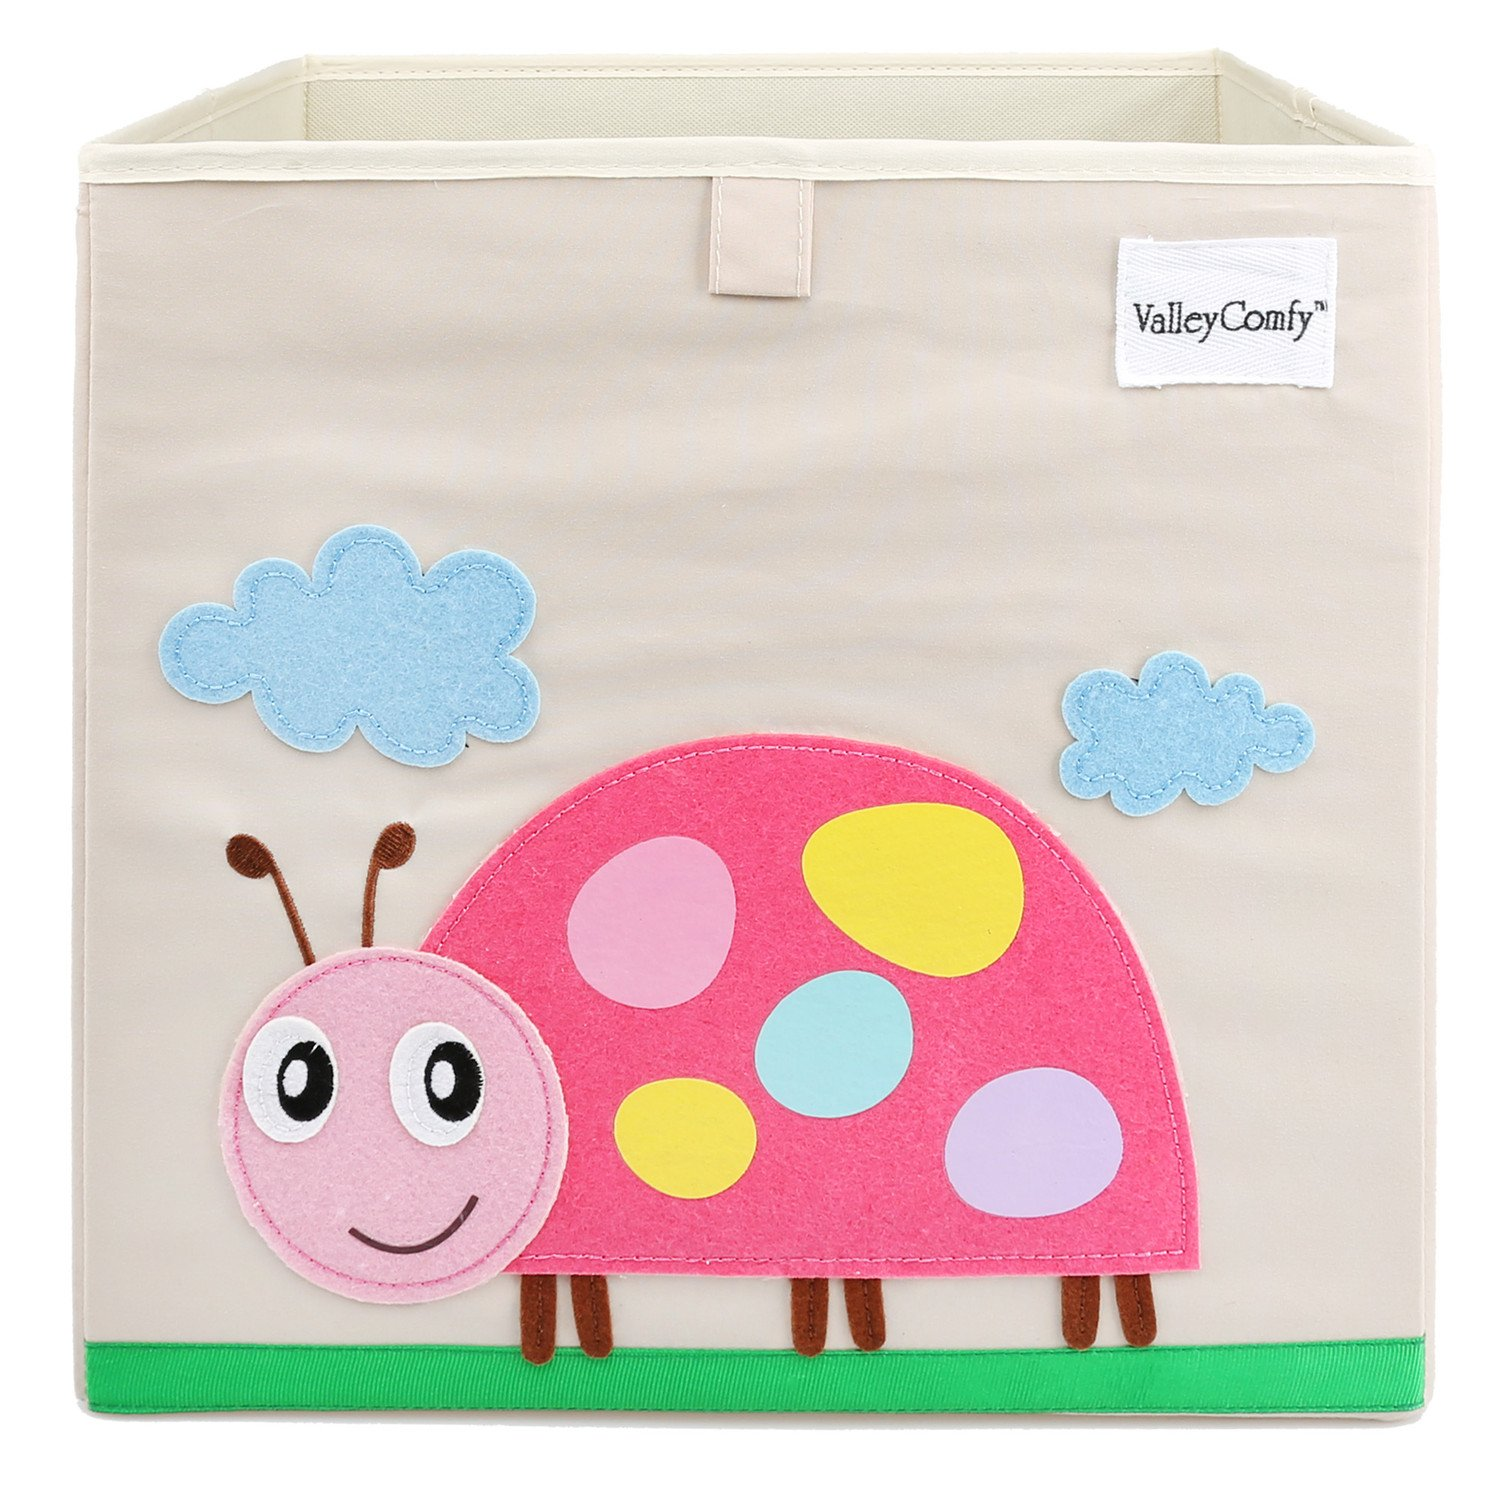 Valleycomfy Toy Box Cartoon Animals Storage Box Kids Cube Organizer Foldable Closet Basket For Clothes, Shoes, Toys And Dots 13x13x13 (Lion) SNHA02